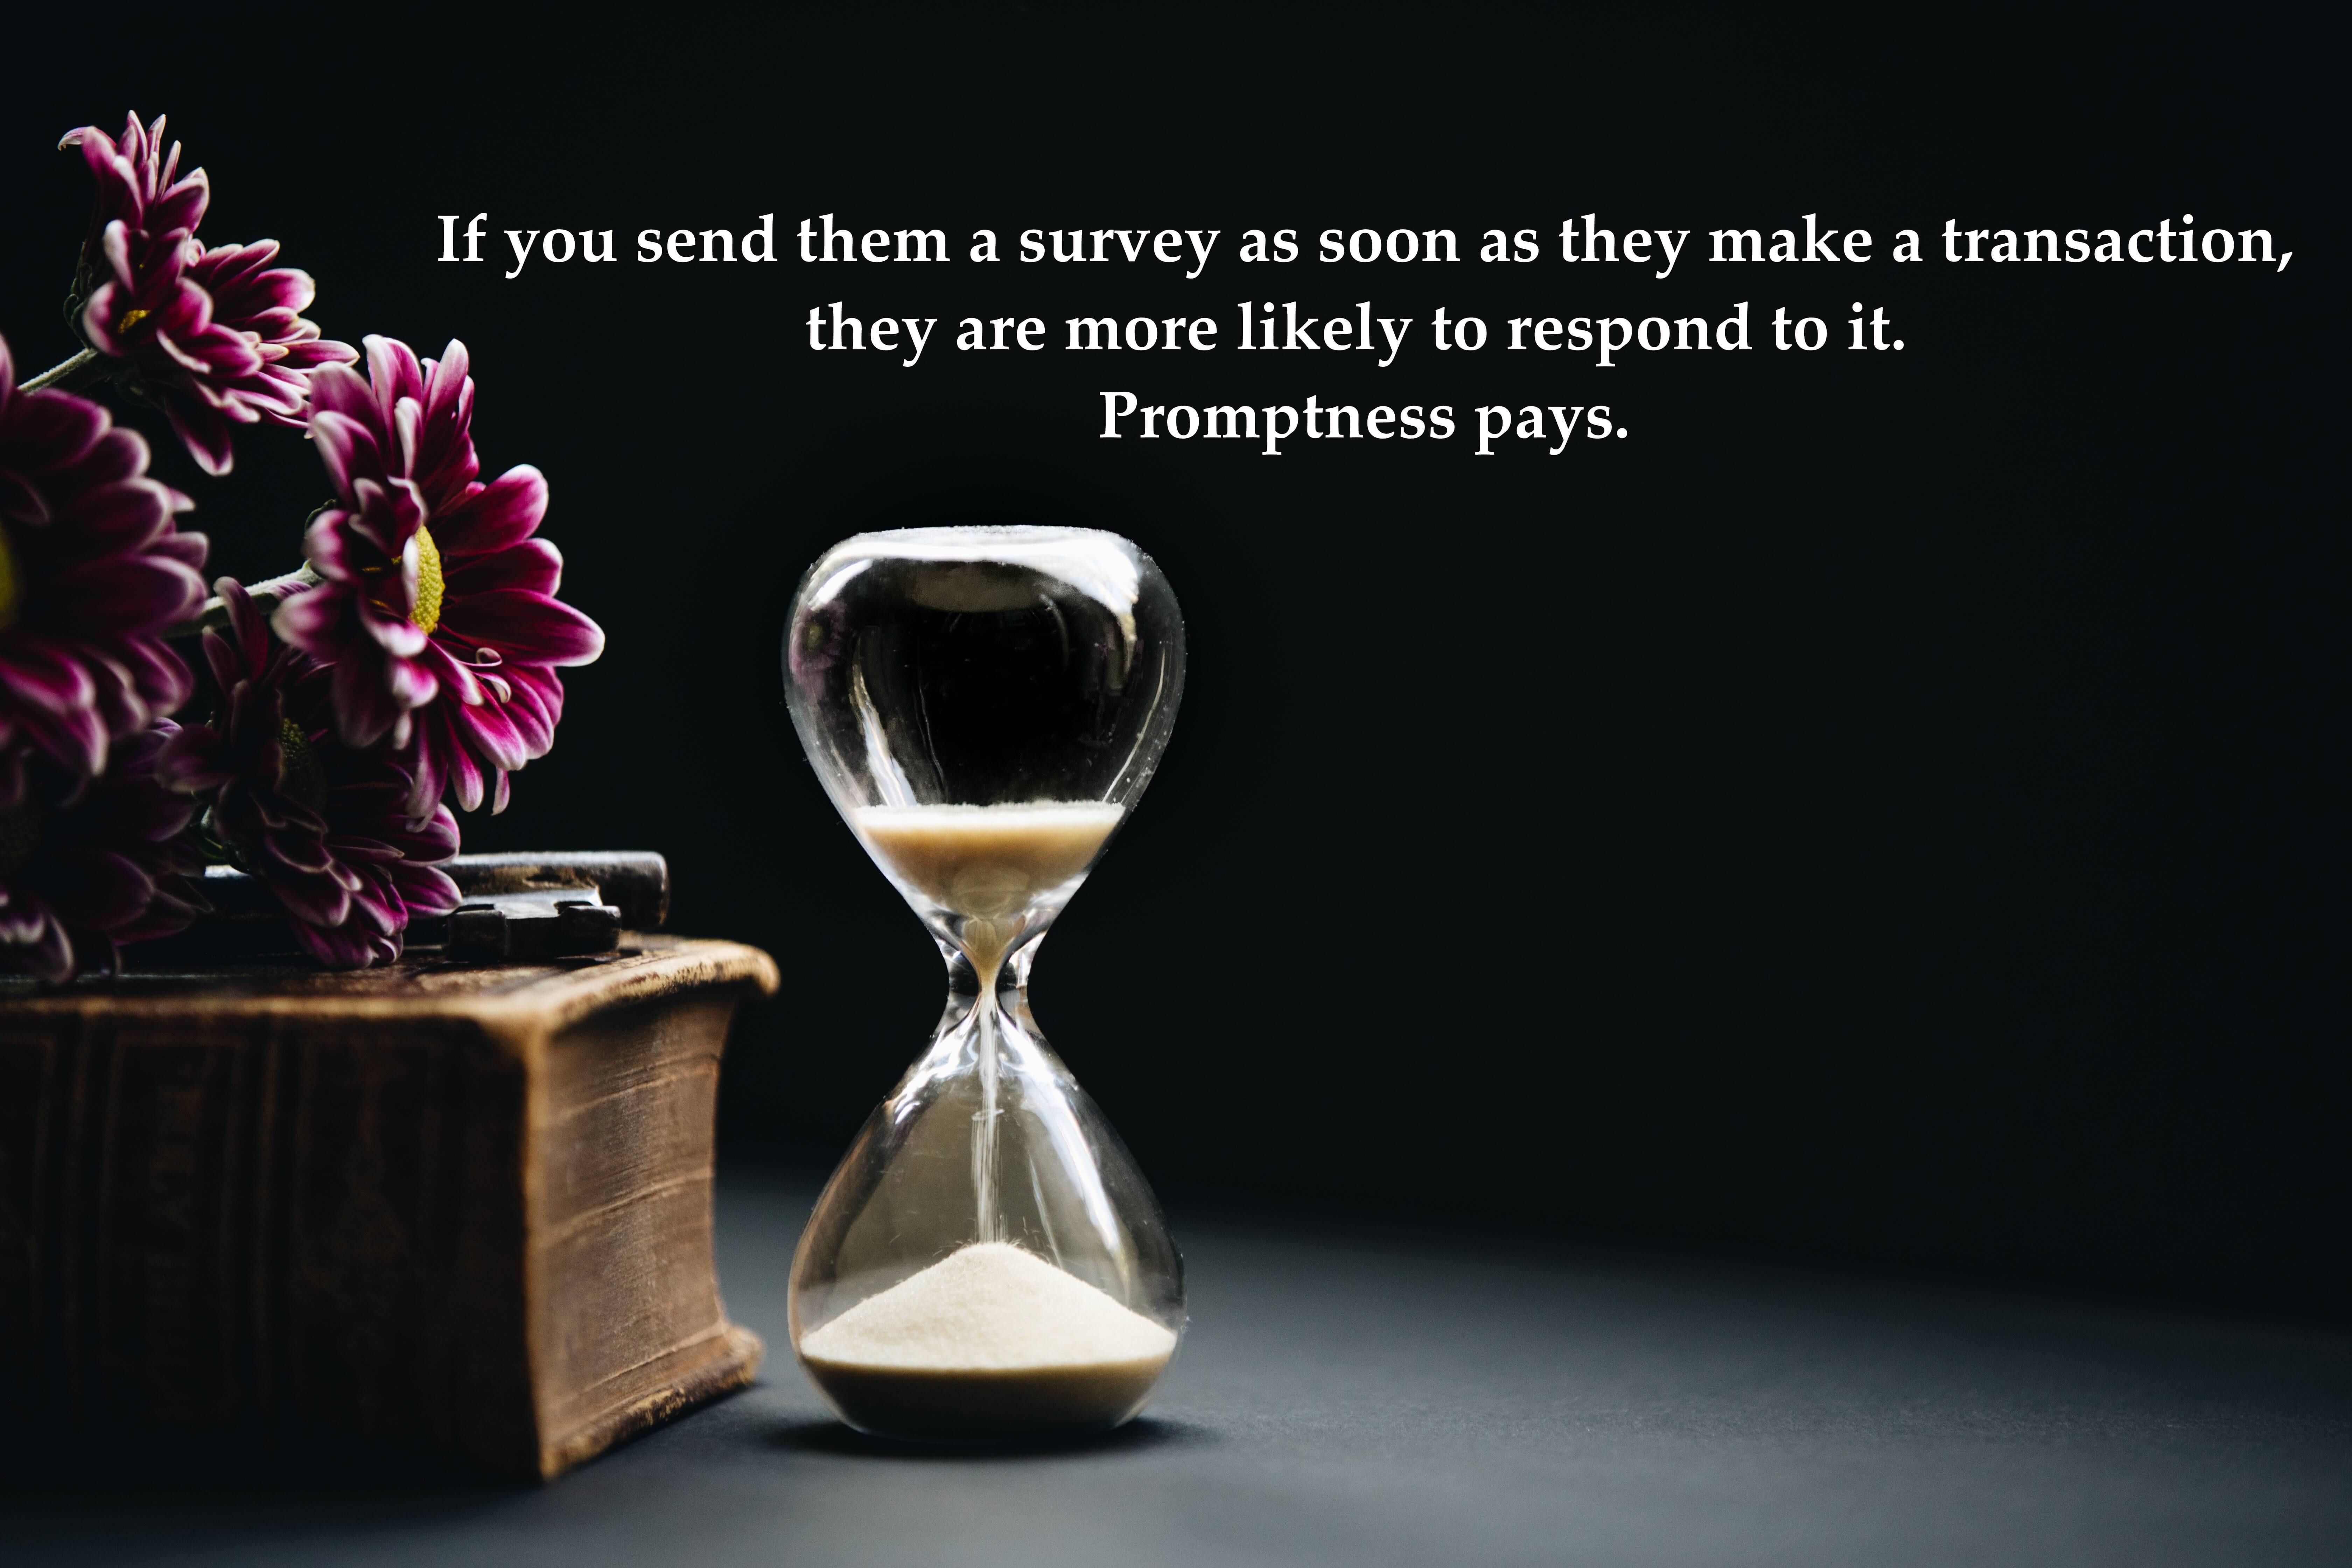 If you send them a survey as soon as they make a transaction, they are more likely to respond to it. Promptness pays.